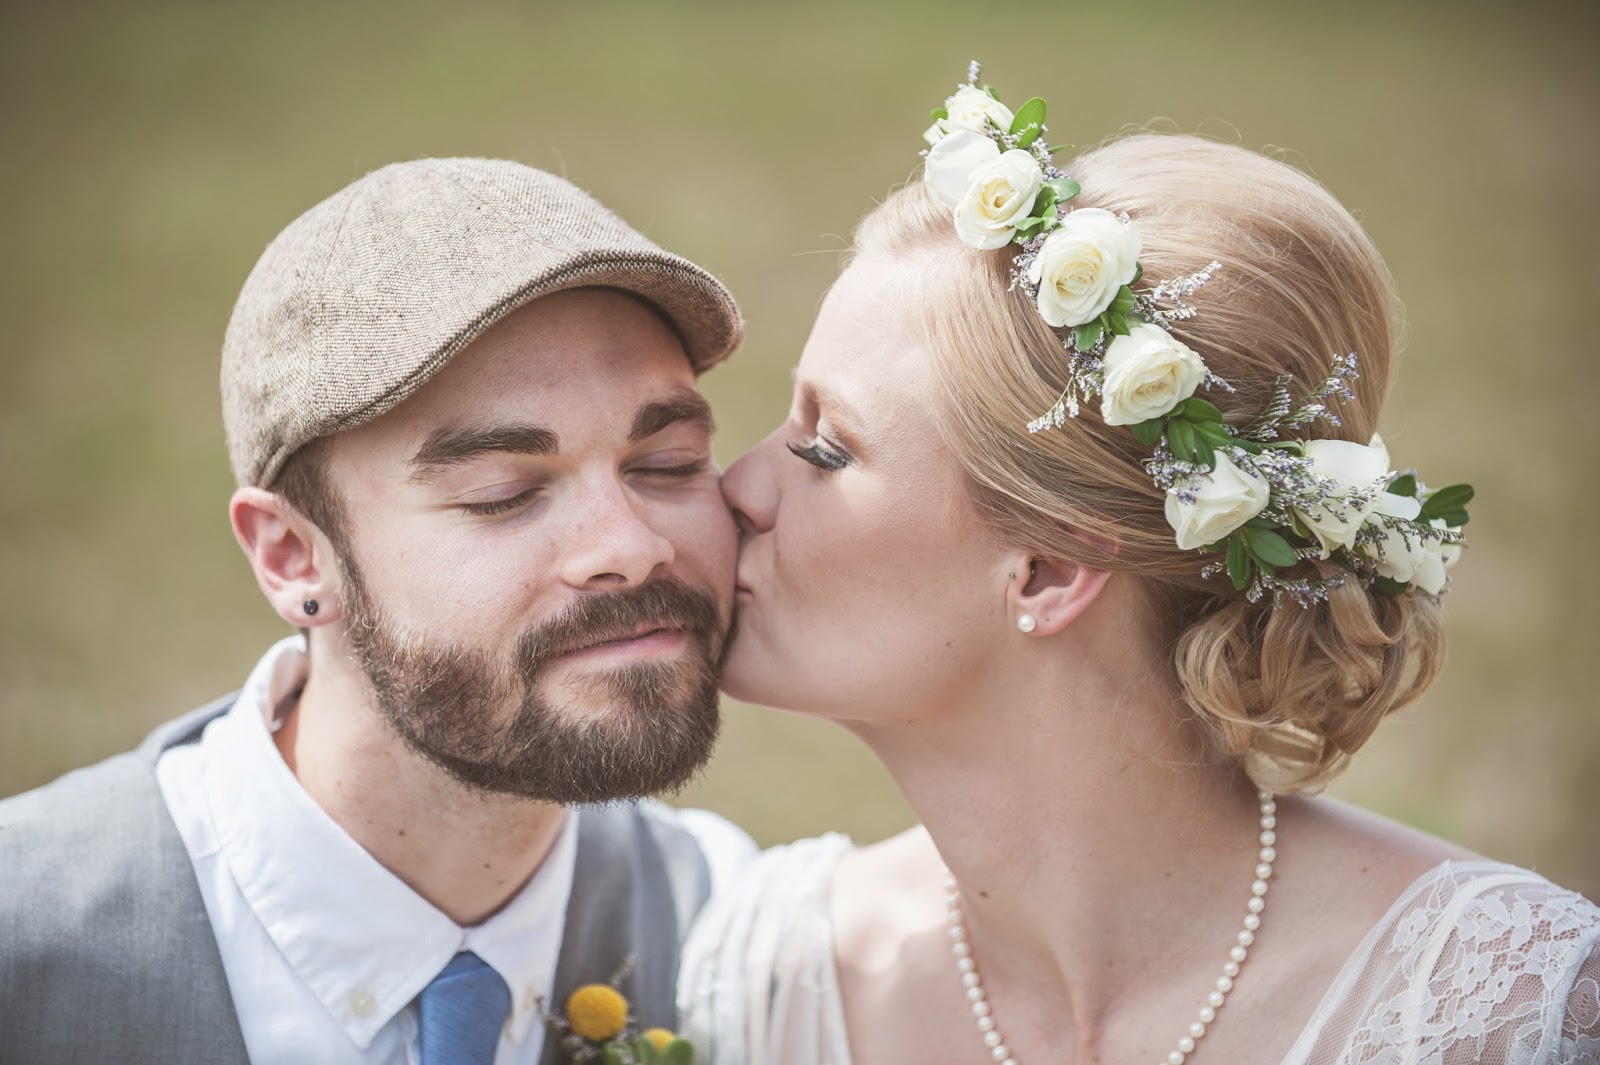 Vintage Bride and Groom with flower crown